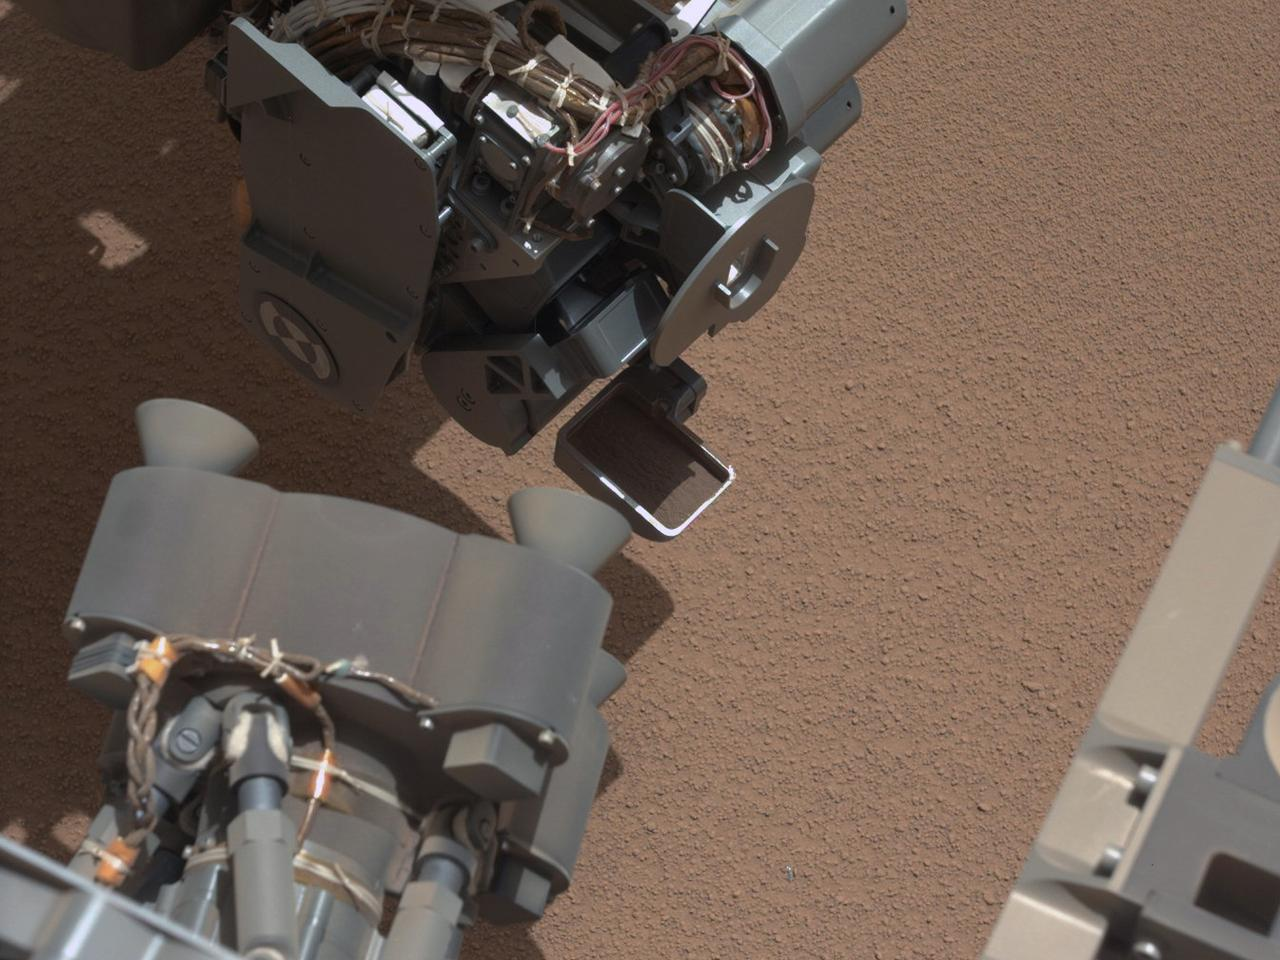 Image from Curiosity showing the bright object in the foreground (Image: NASA/JPL-Caltech)